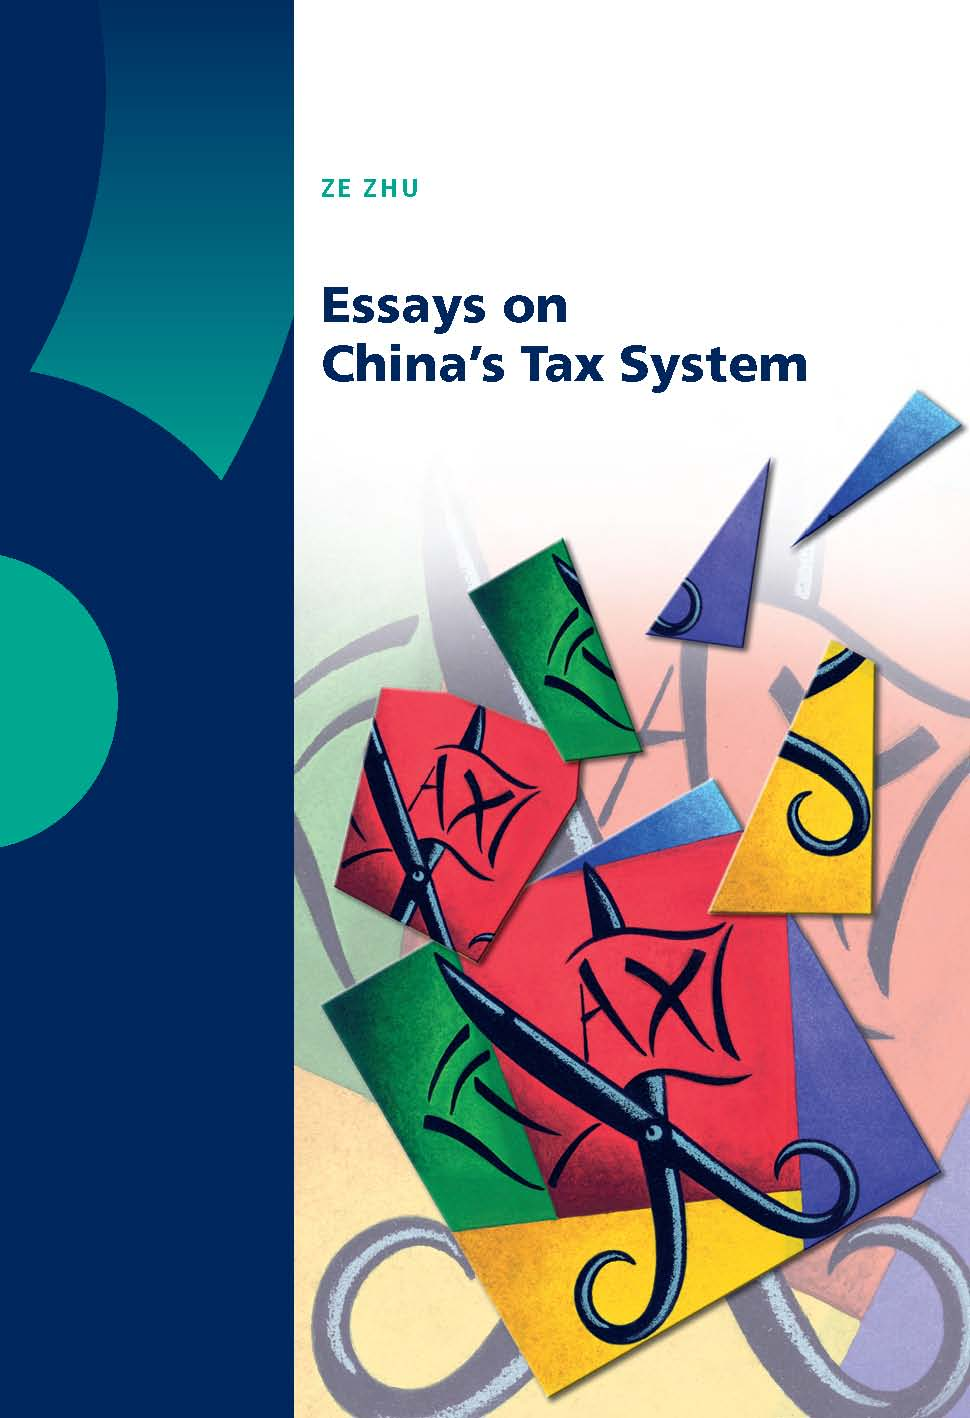 Essays on China's Tax System